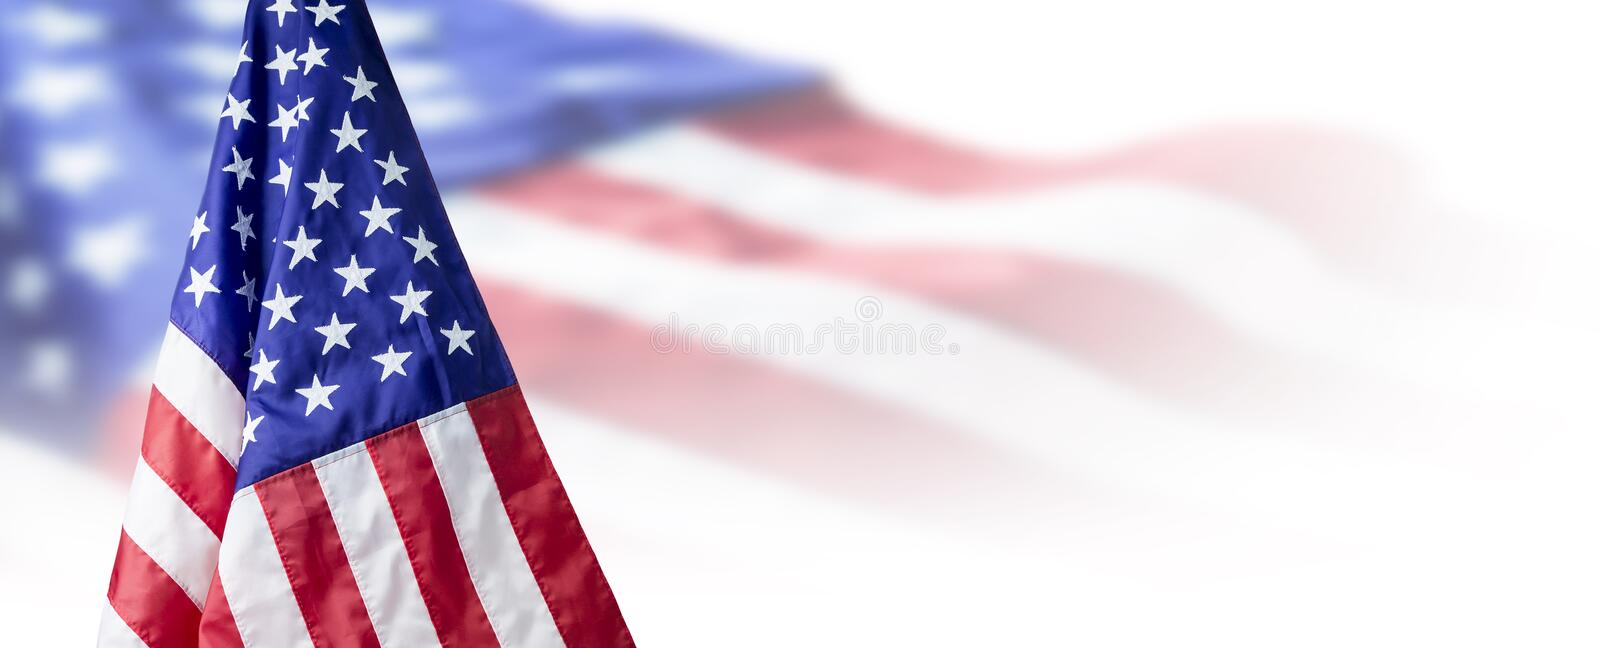 USA or American flag background stock photo